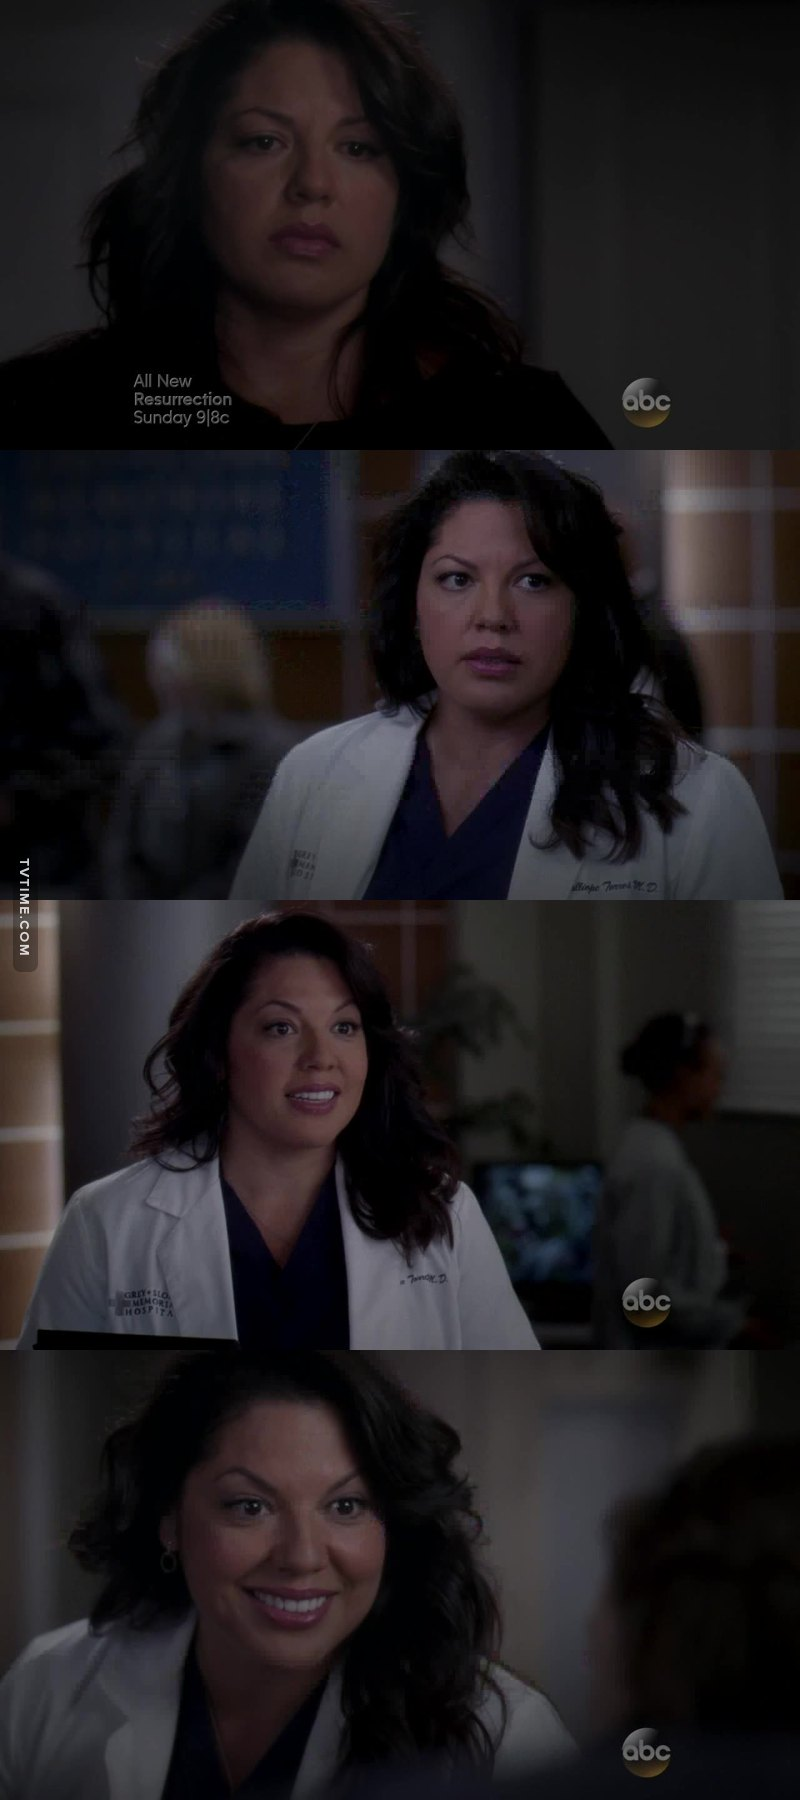 Calliope Iphegenia Torres, a great doctor/mum/friend who deserves better